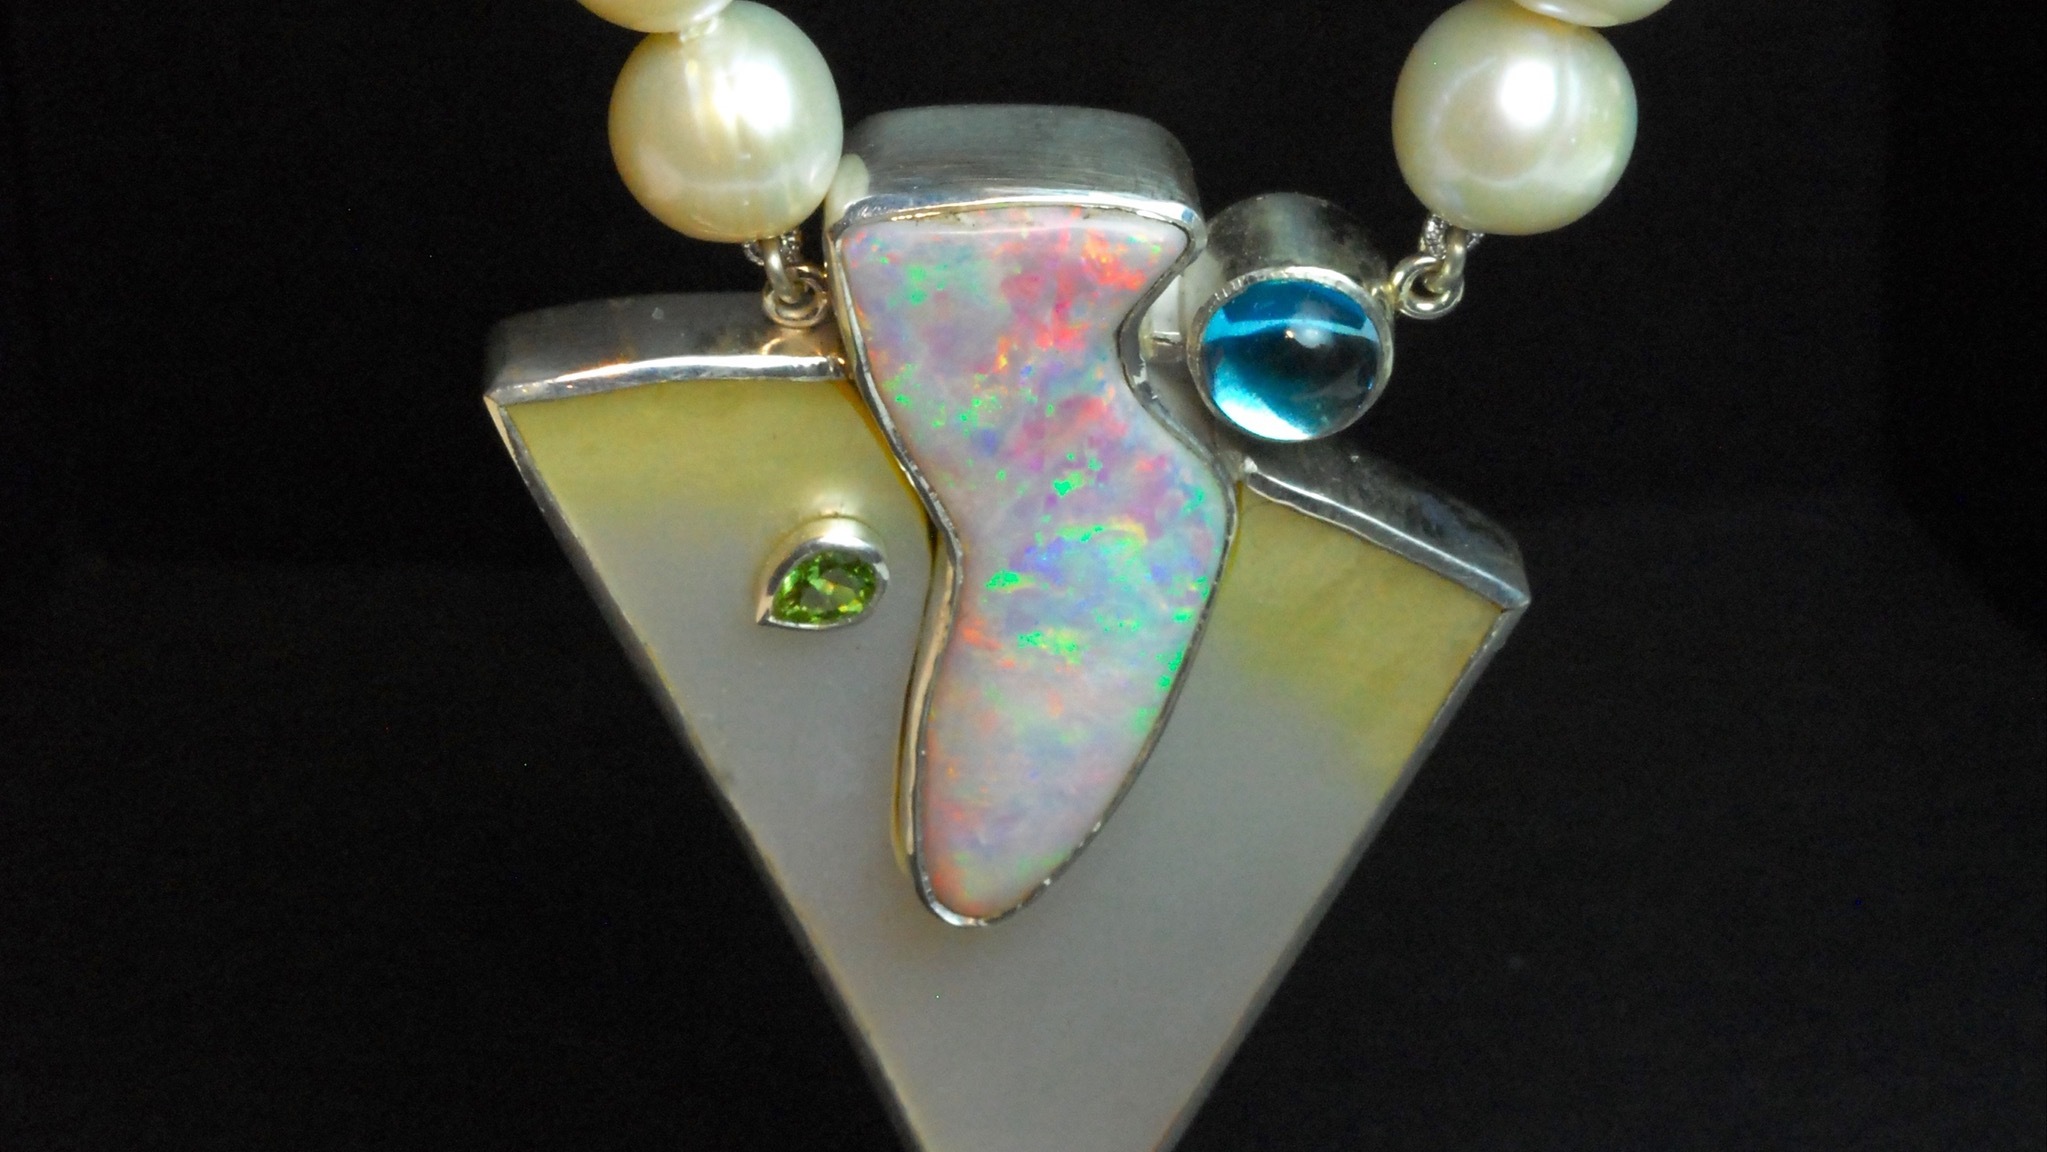 Opal, pearl shell, topaz and peridot pendant on pearls.